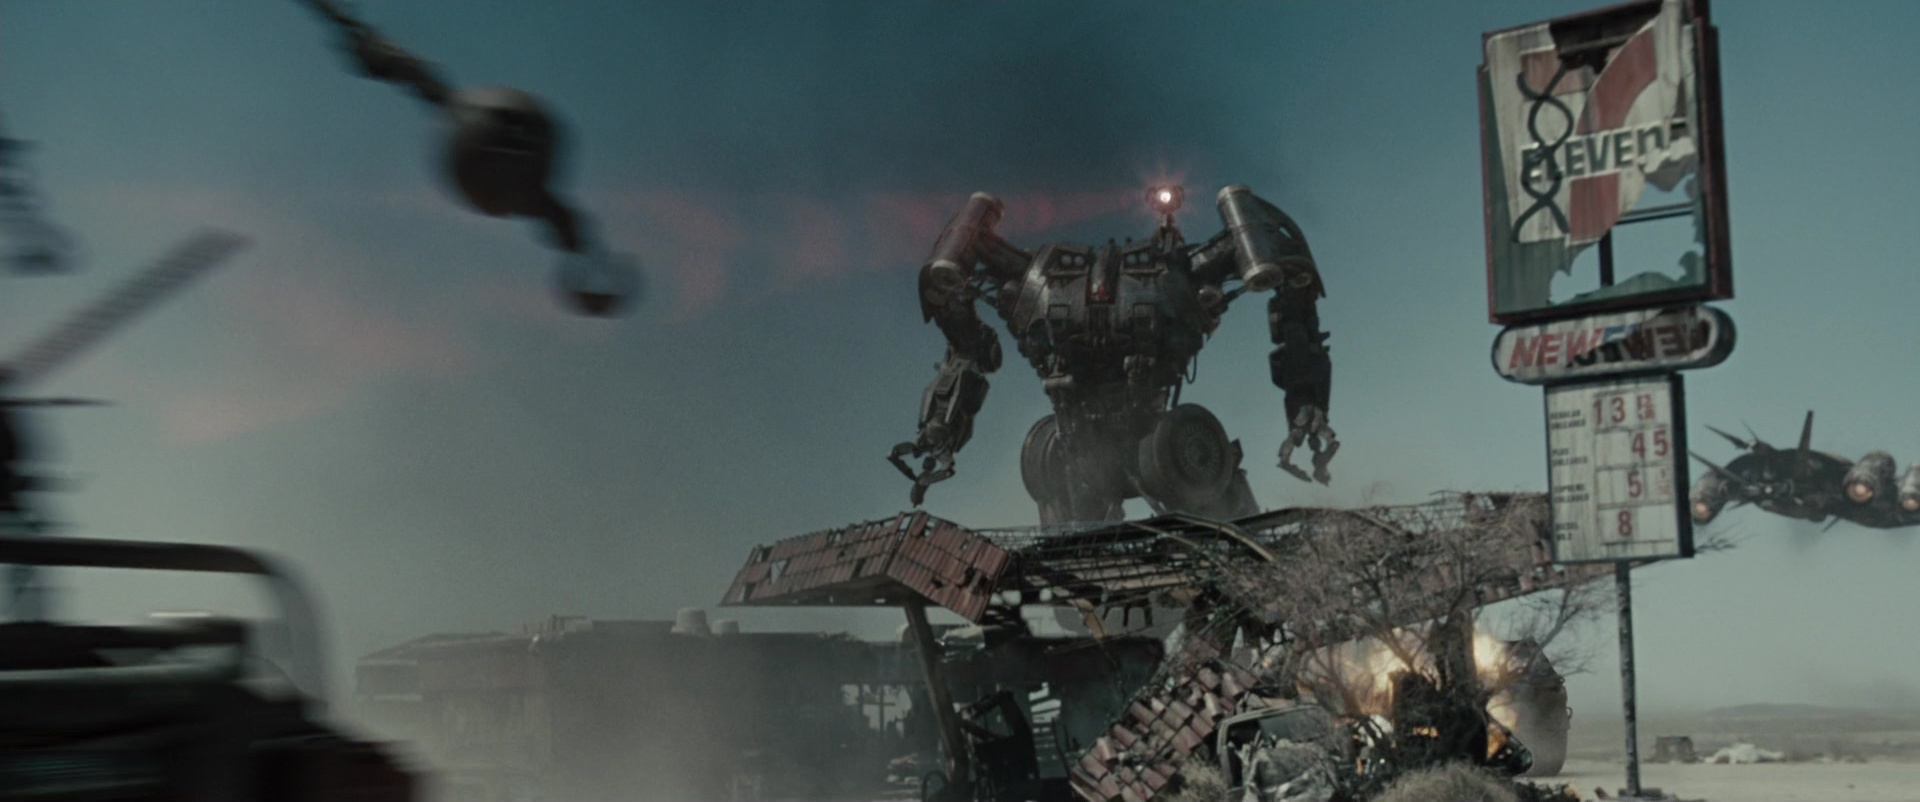 7eleven store and gas station in terminator salvation